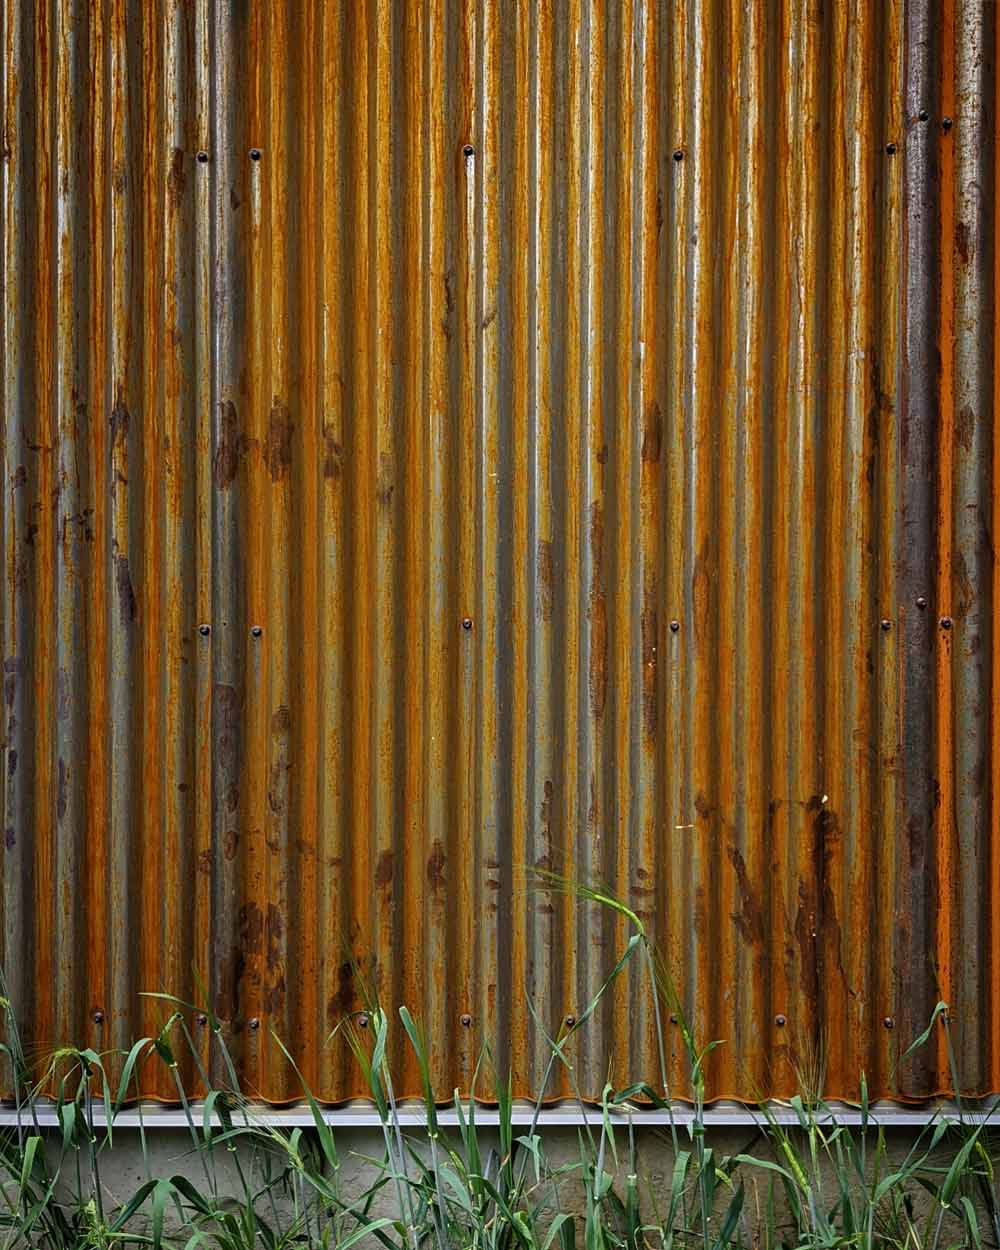 Corrugated Corten steel cladding installation begins to patina - Back40House - Pendleton, IN